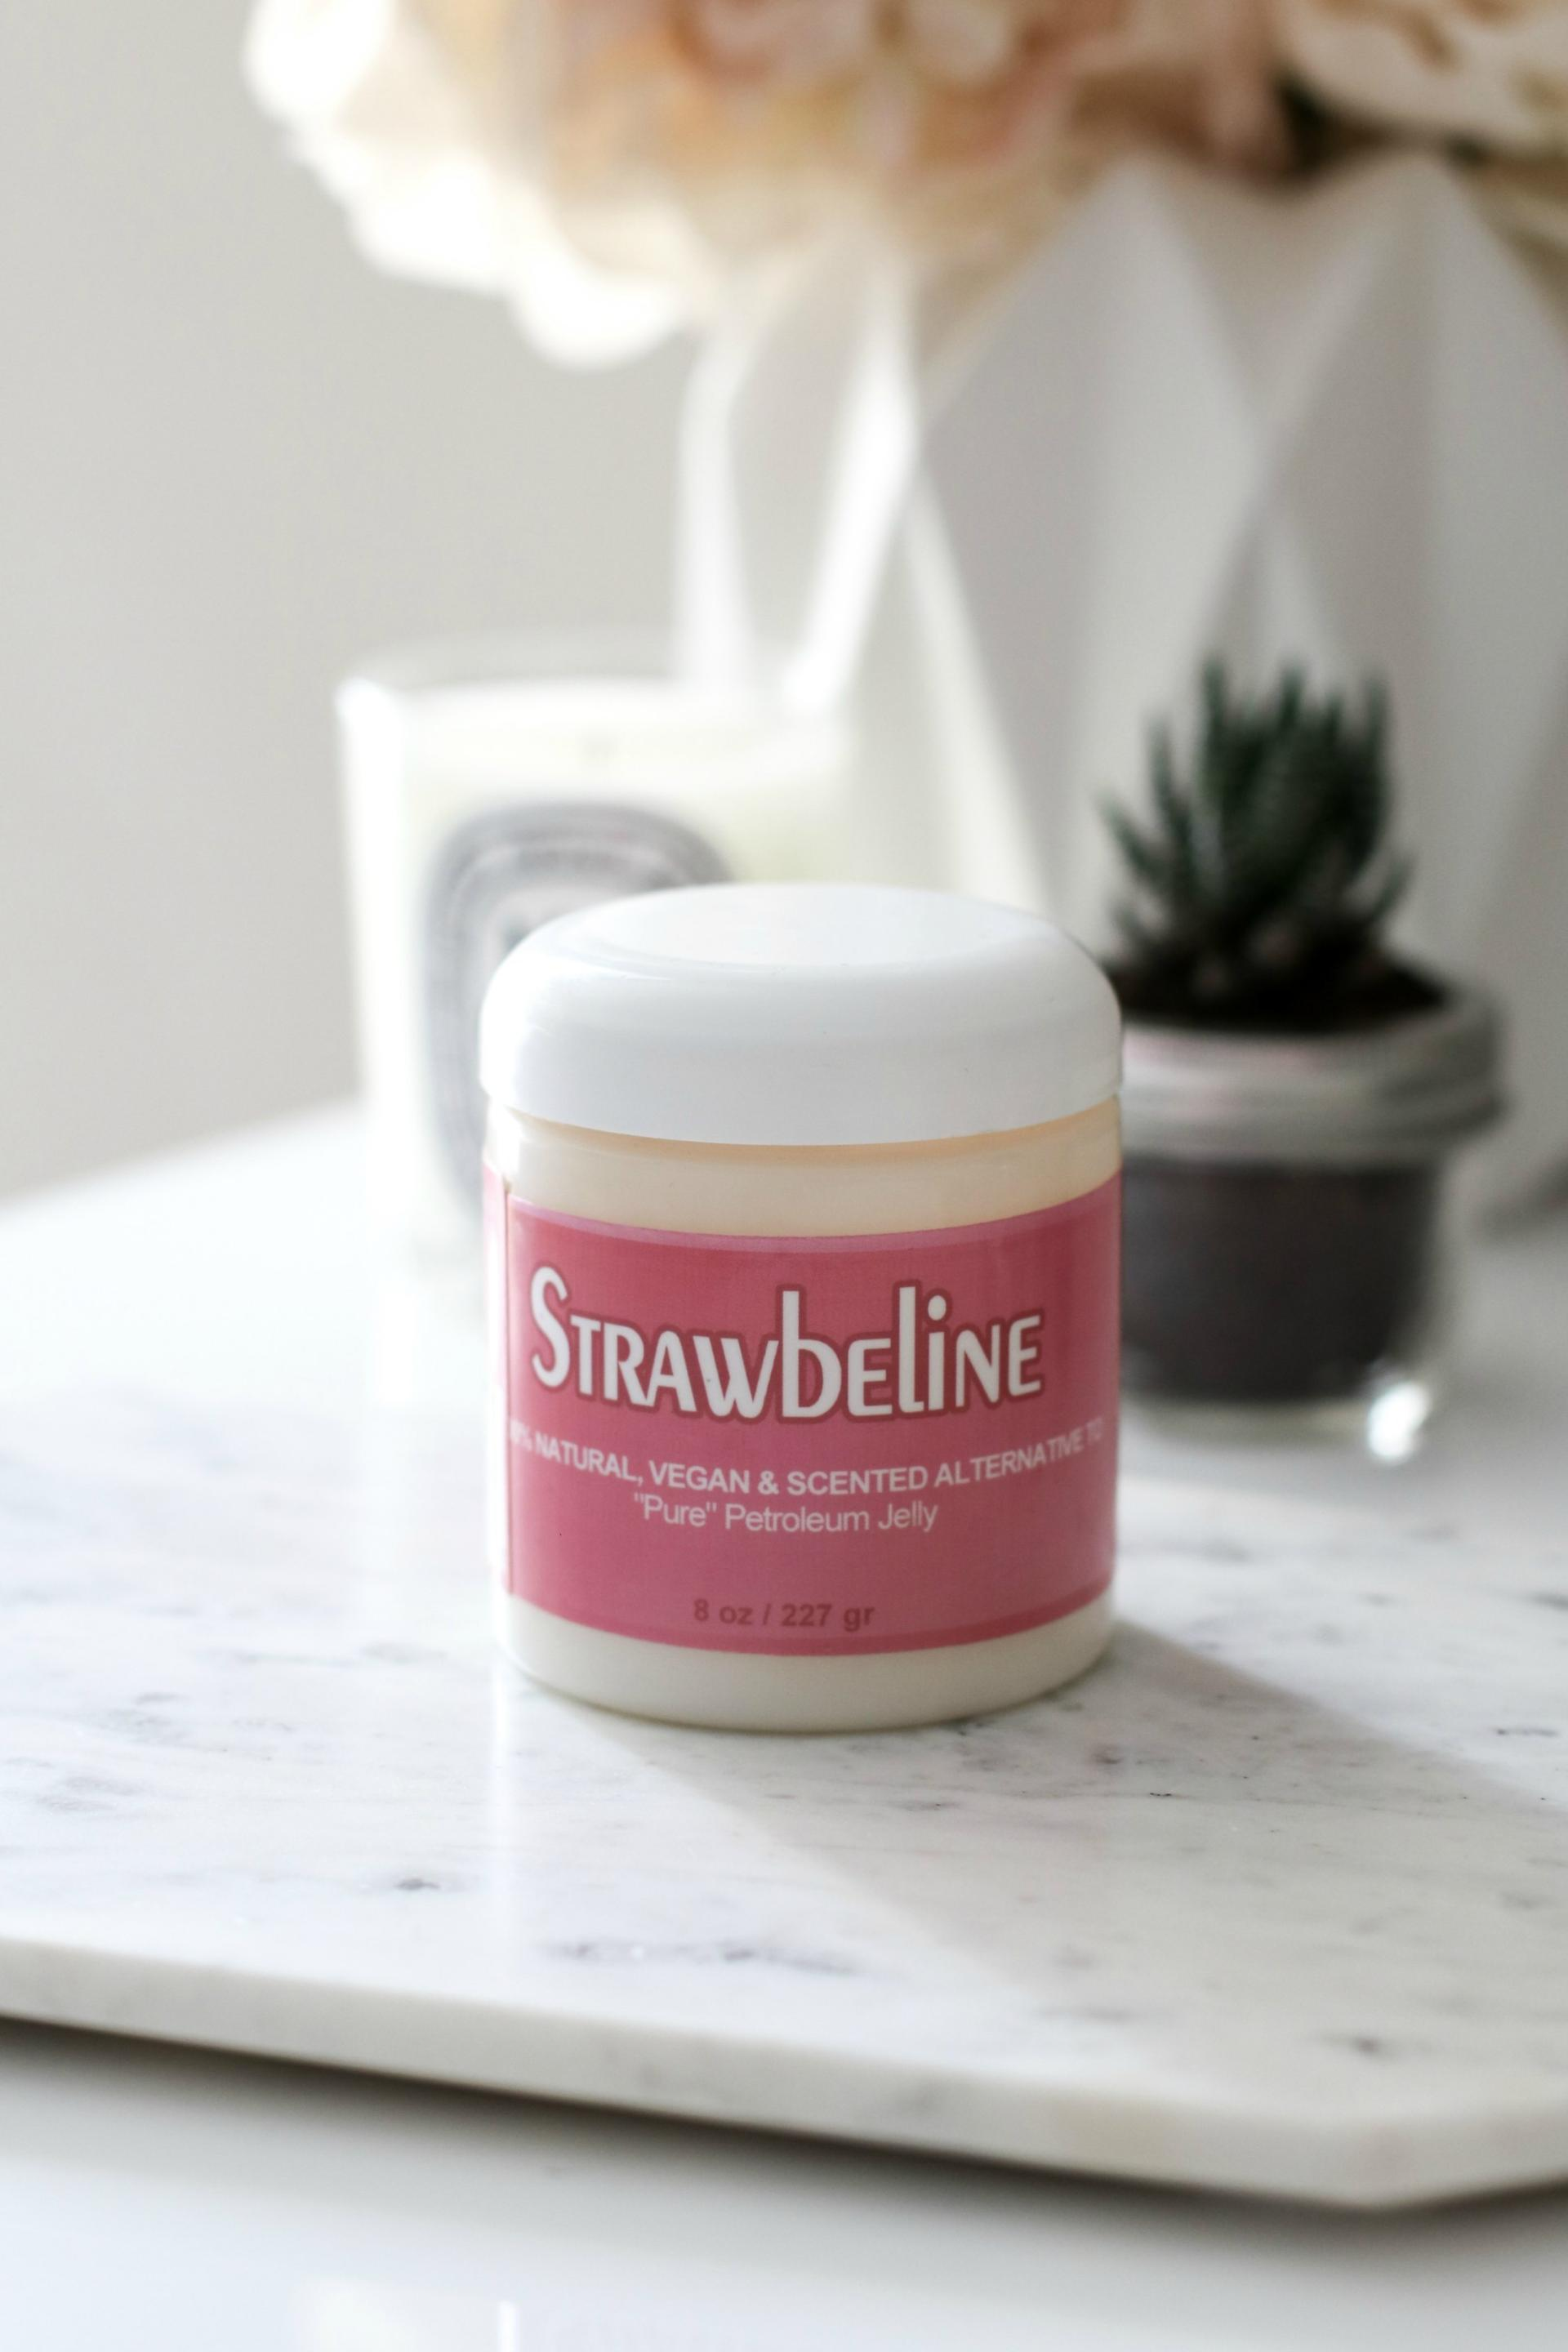 Strawbelline Vegan Petroleum Jelly